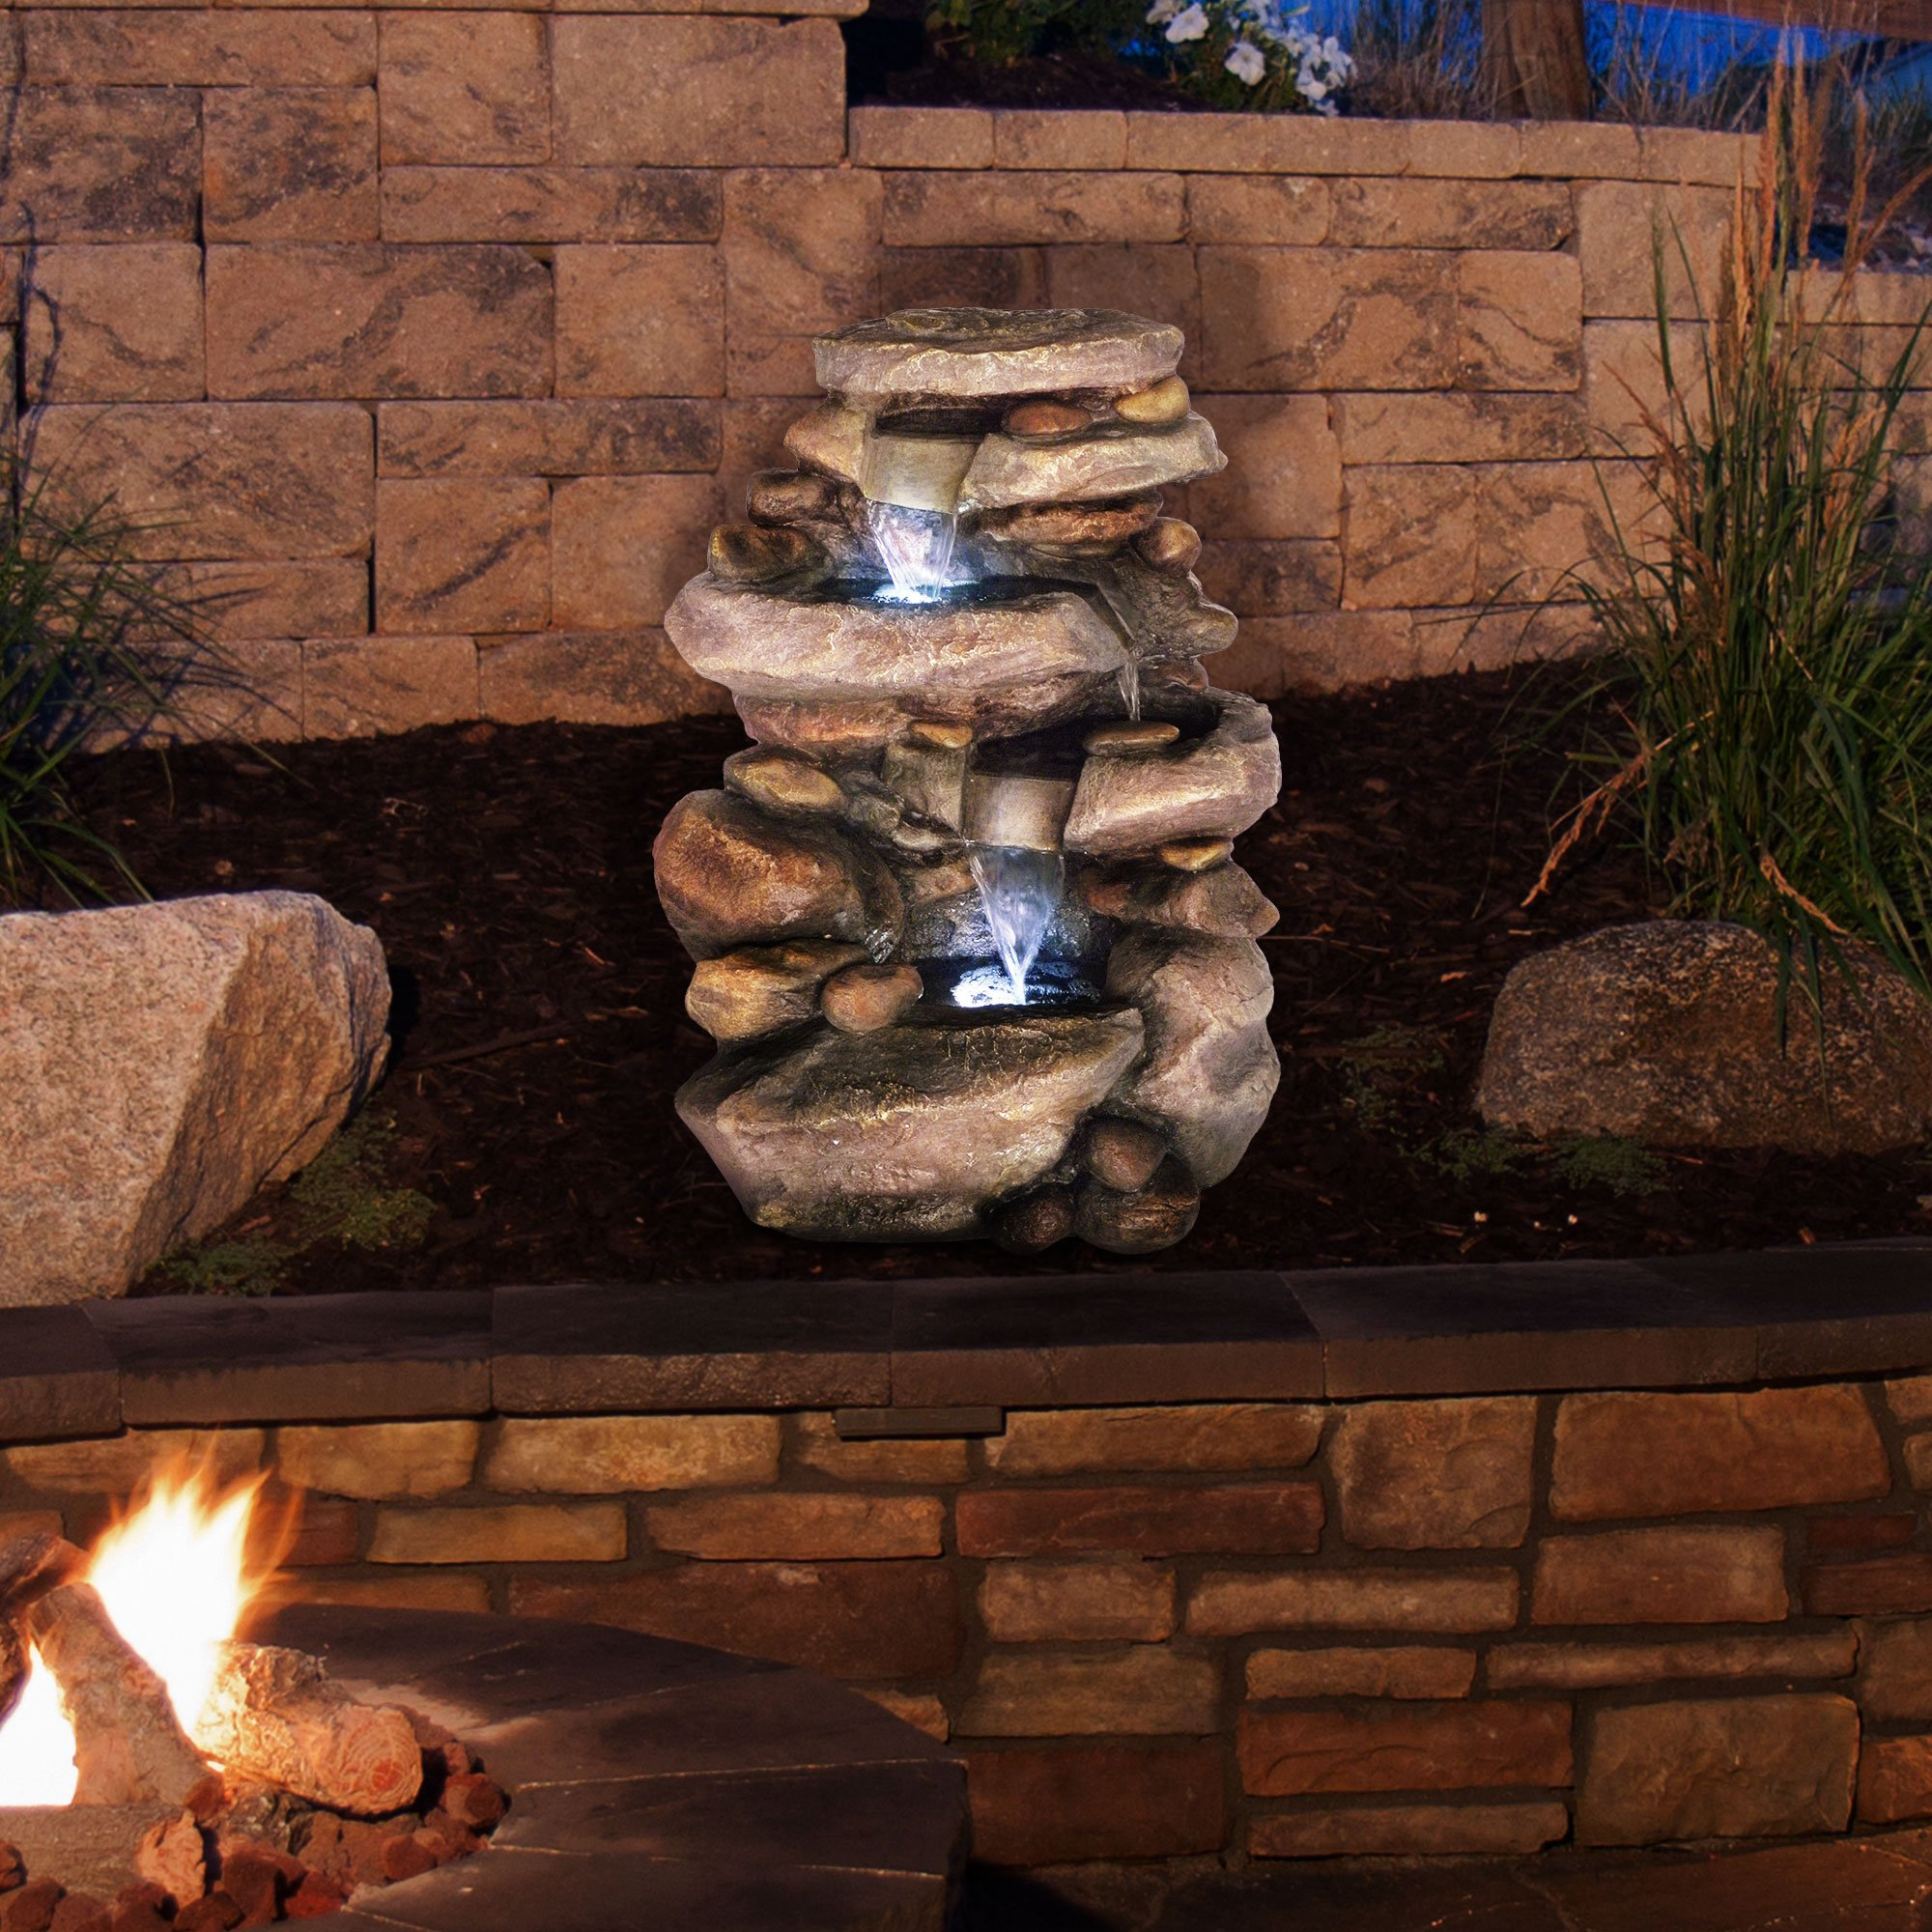 Go Yard Stone Waterfall Fountain with LED Lights by GOYARD